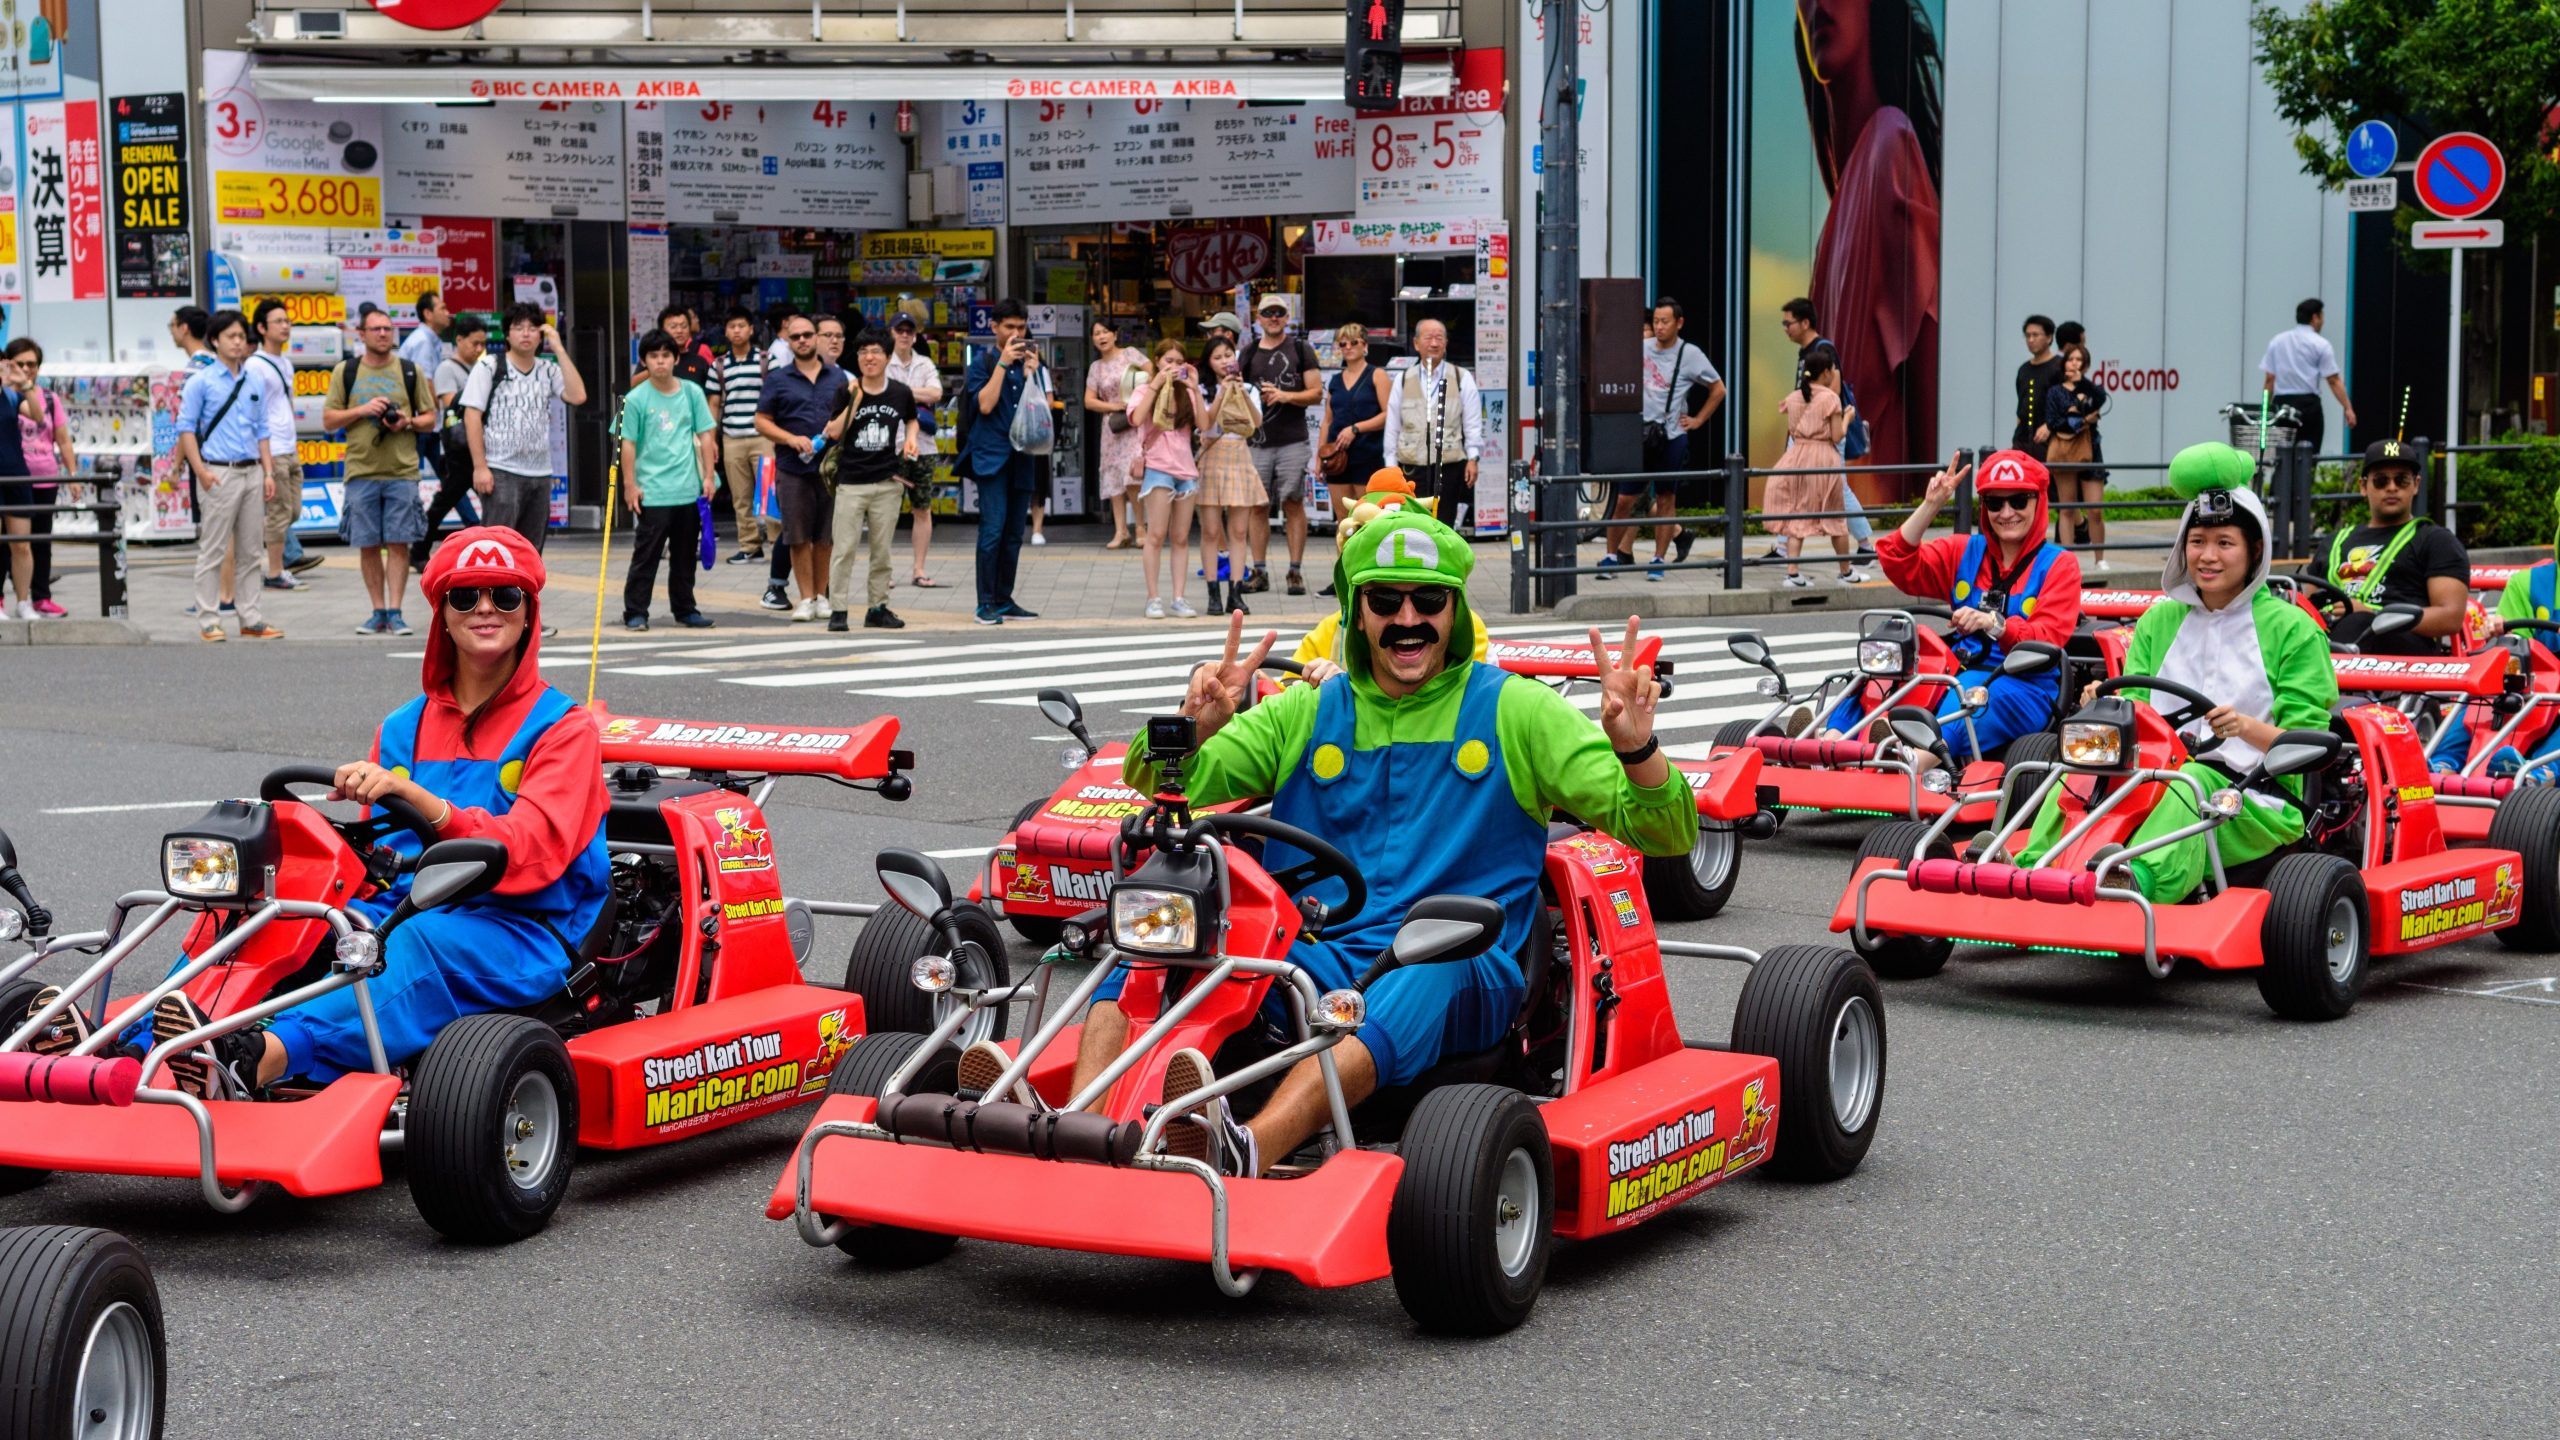 Locals Vs  Tourists  A Controversy Over Mario Kart In